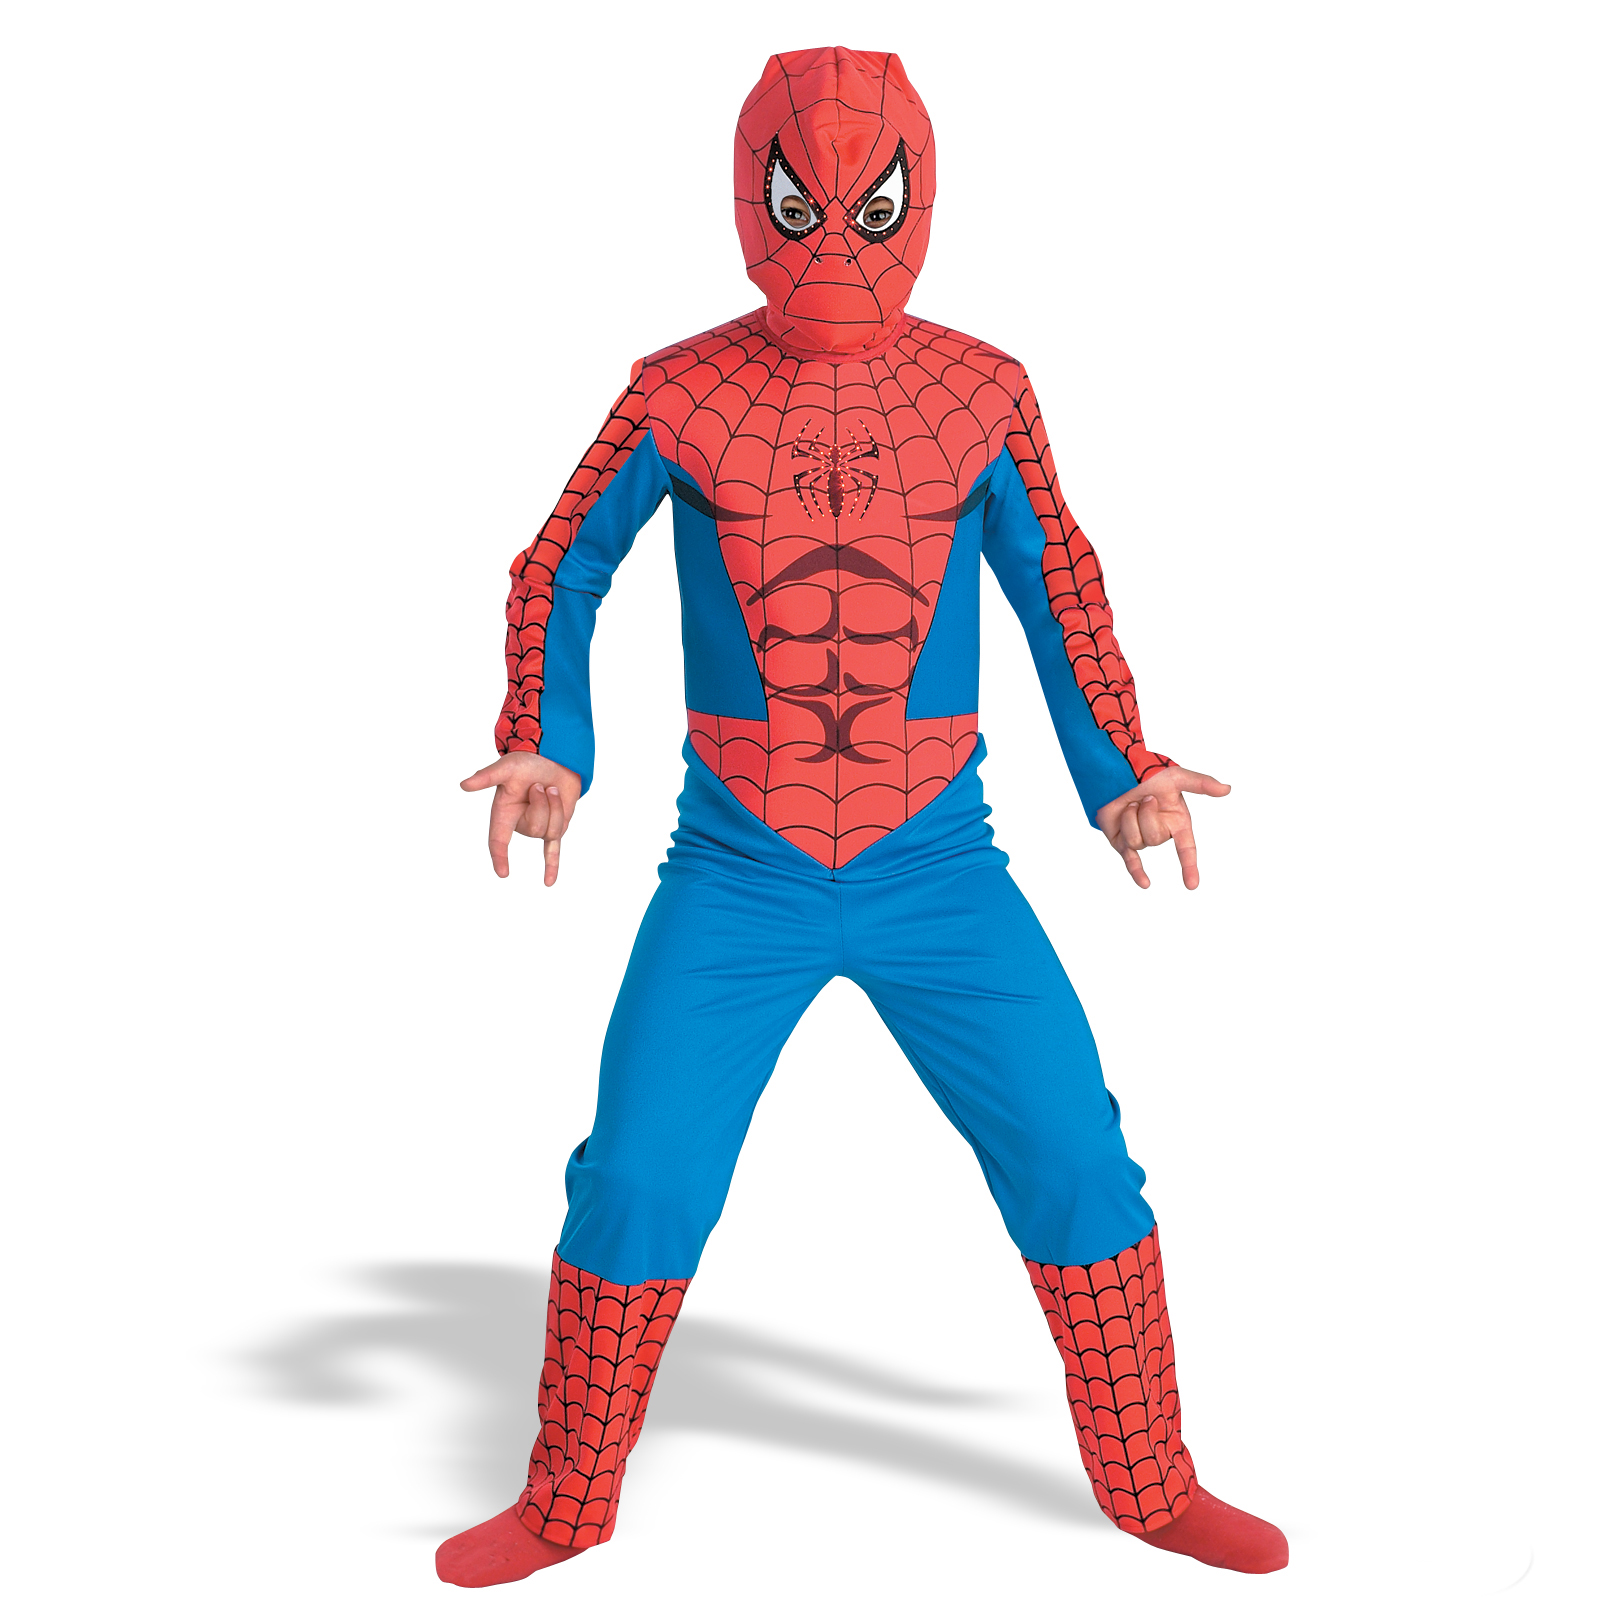 Black Lycra Spandex Spiderman Unisex Costume Suit Outfit Zentai with.